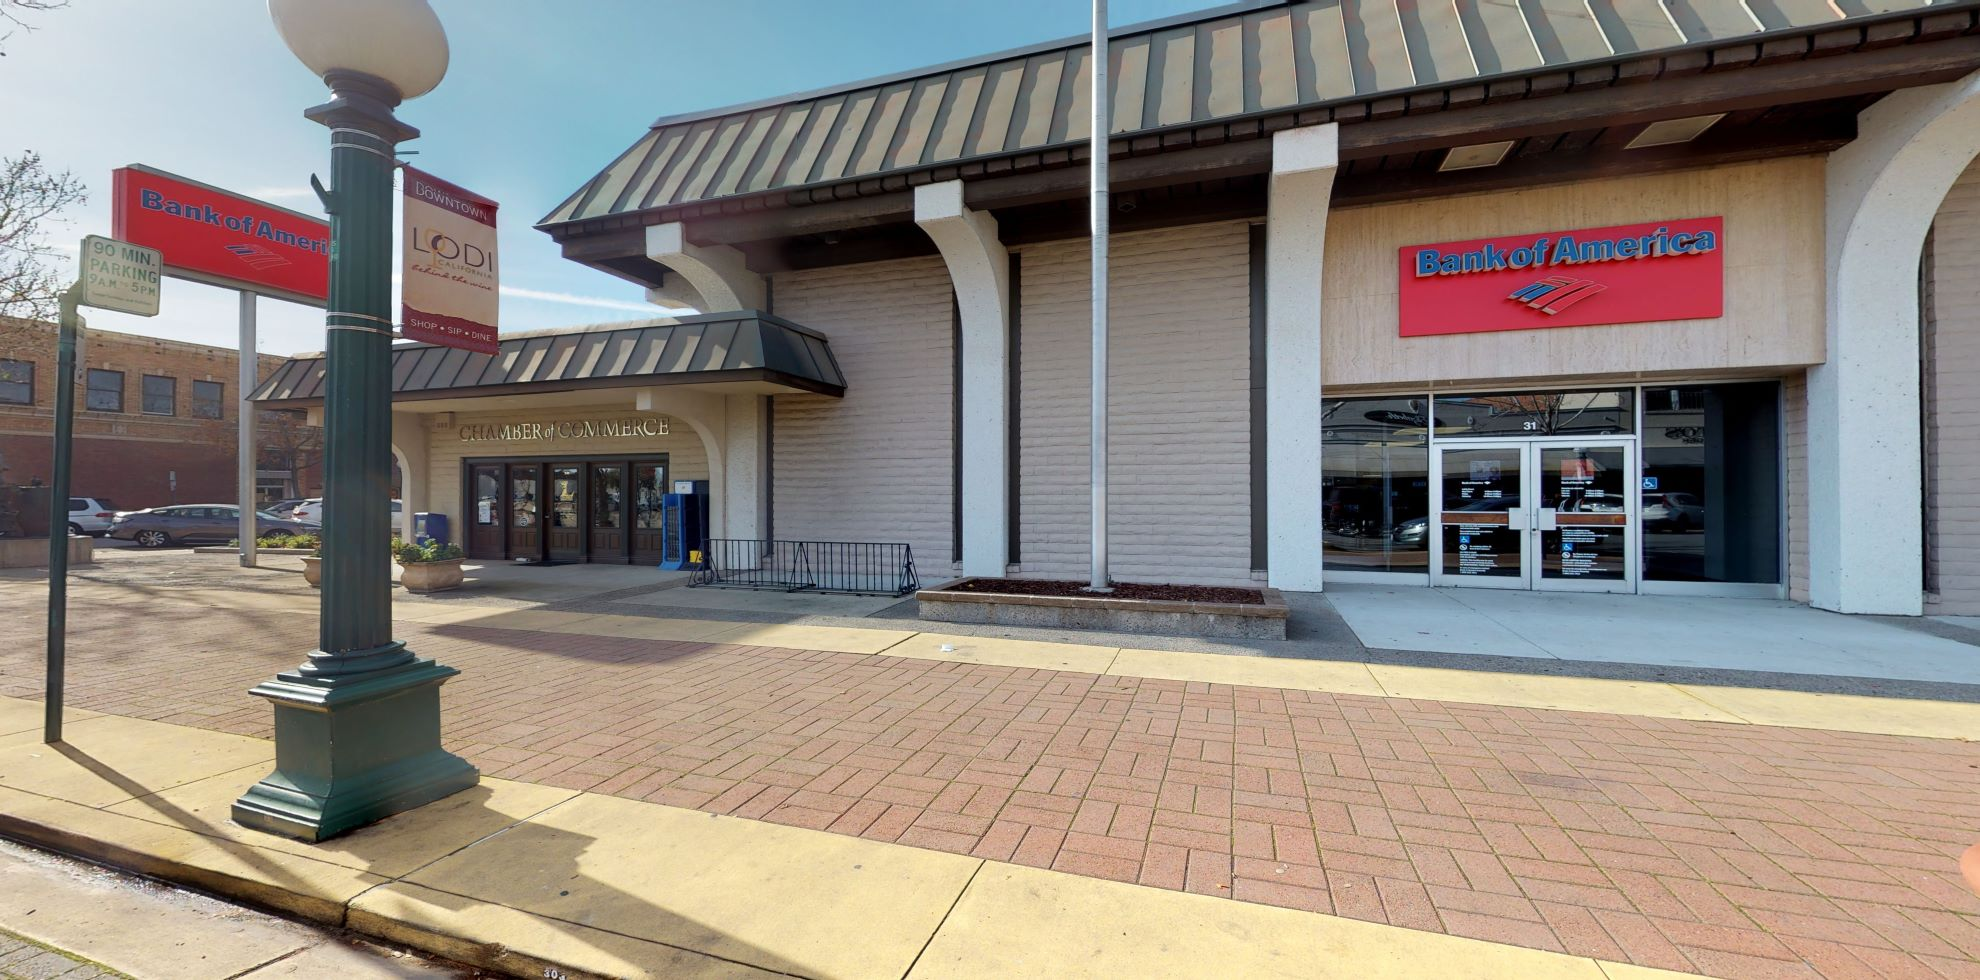 Bank of America financial center with walk-up ATM | 31 S School St, Lodi, CA 95240